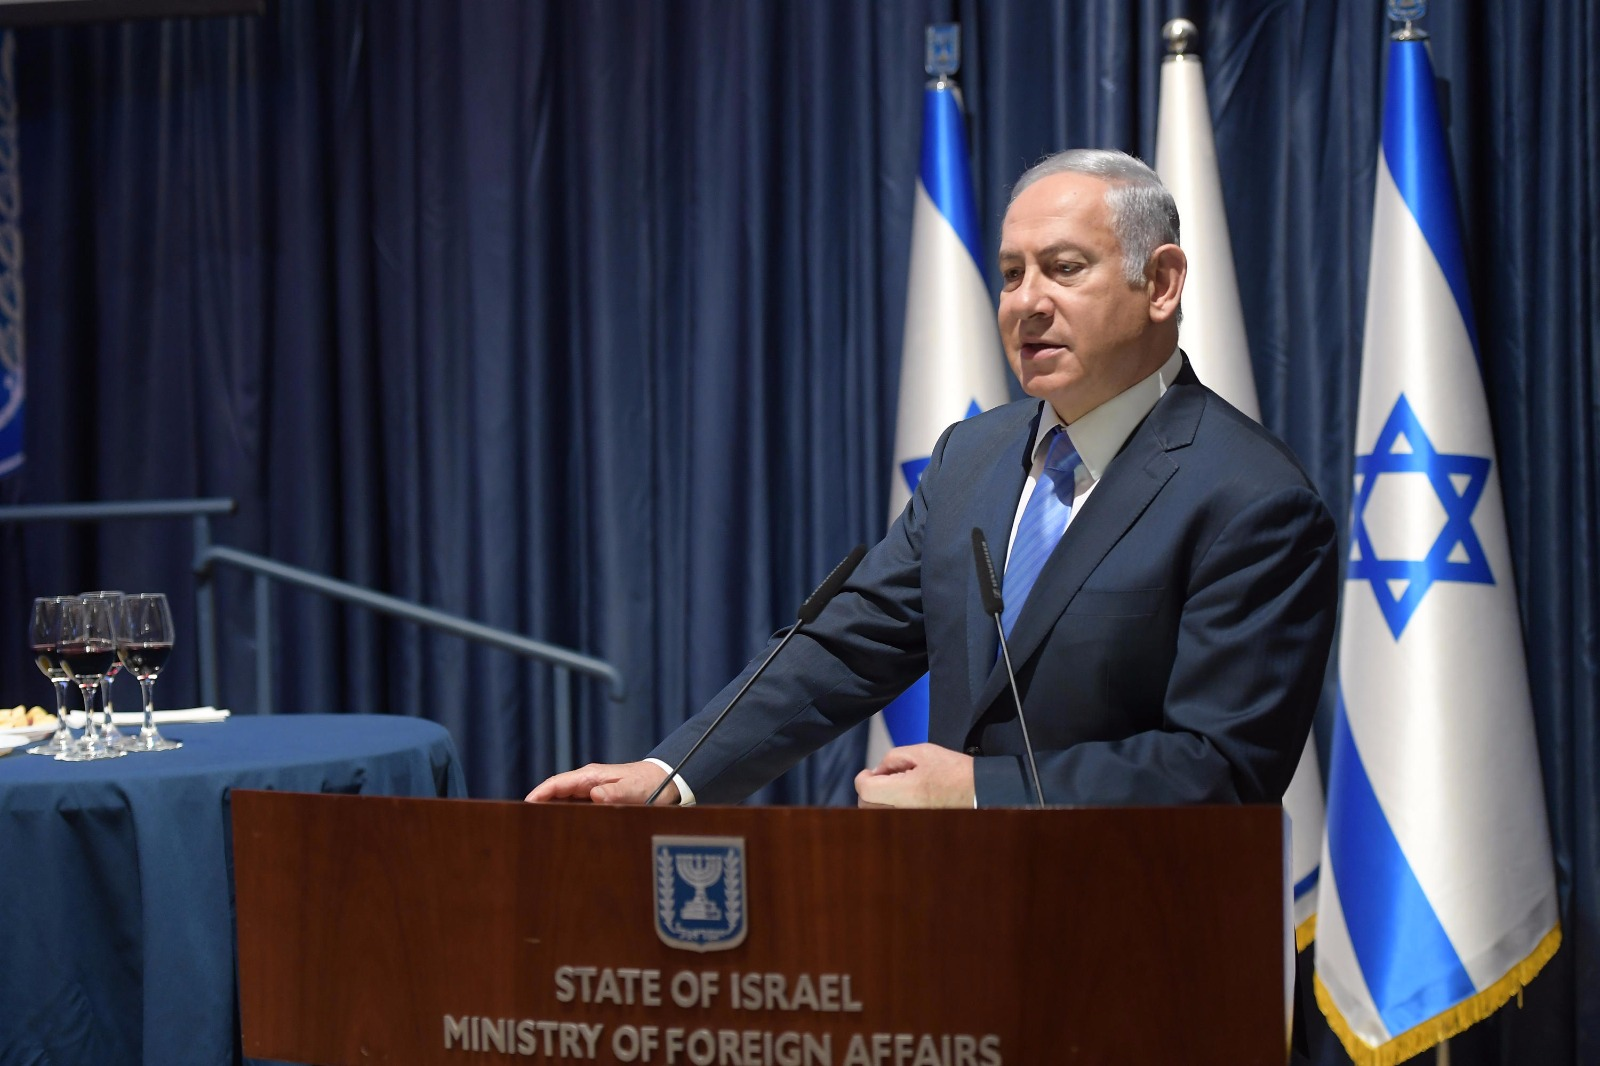 Netanyahu comments on latest Israeli airstrikes on Syria